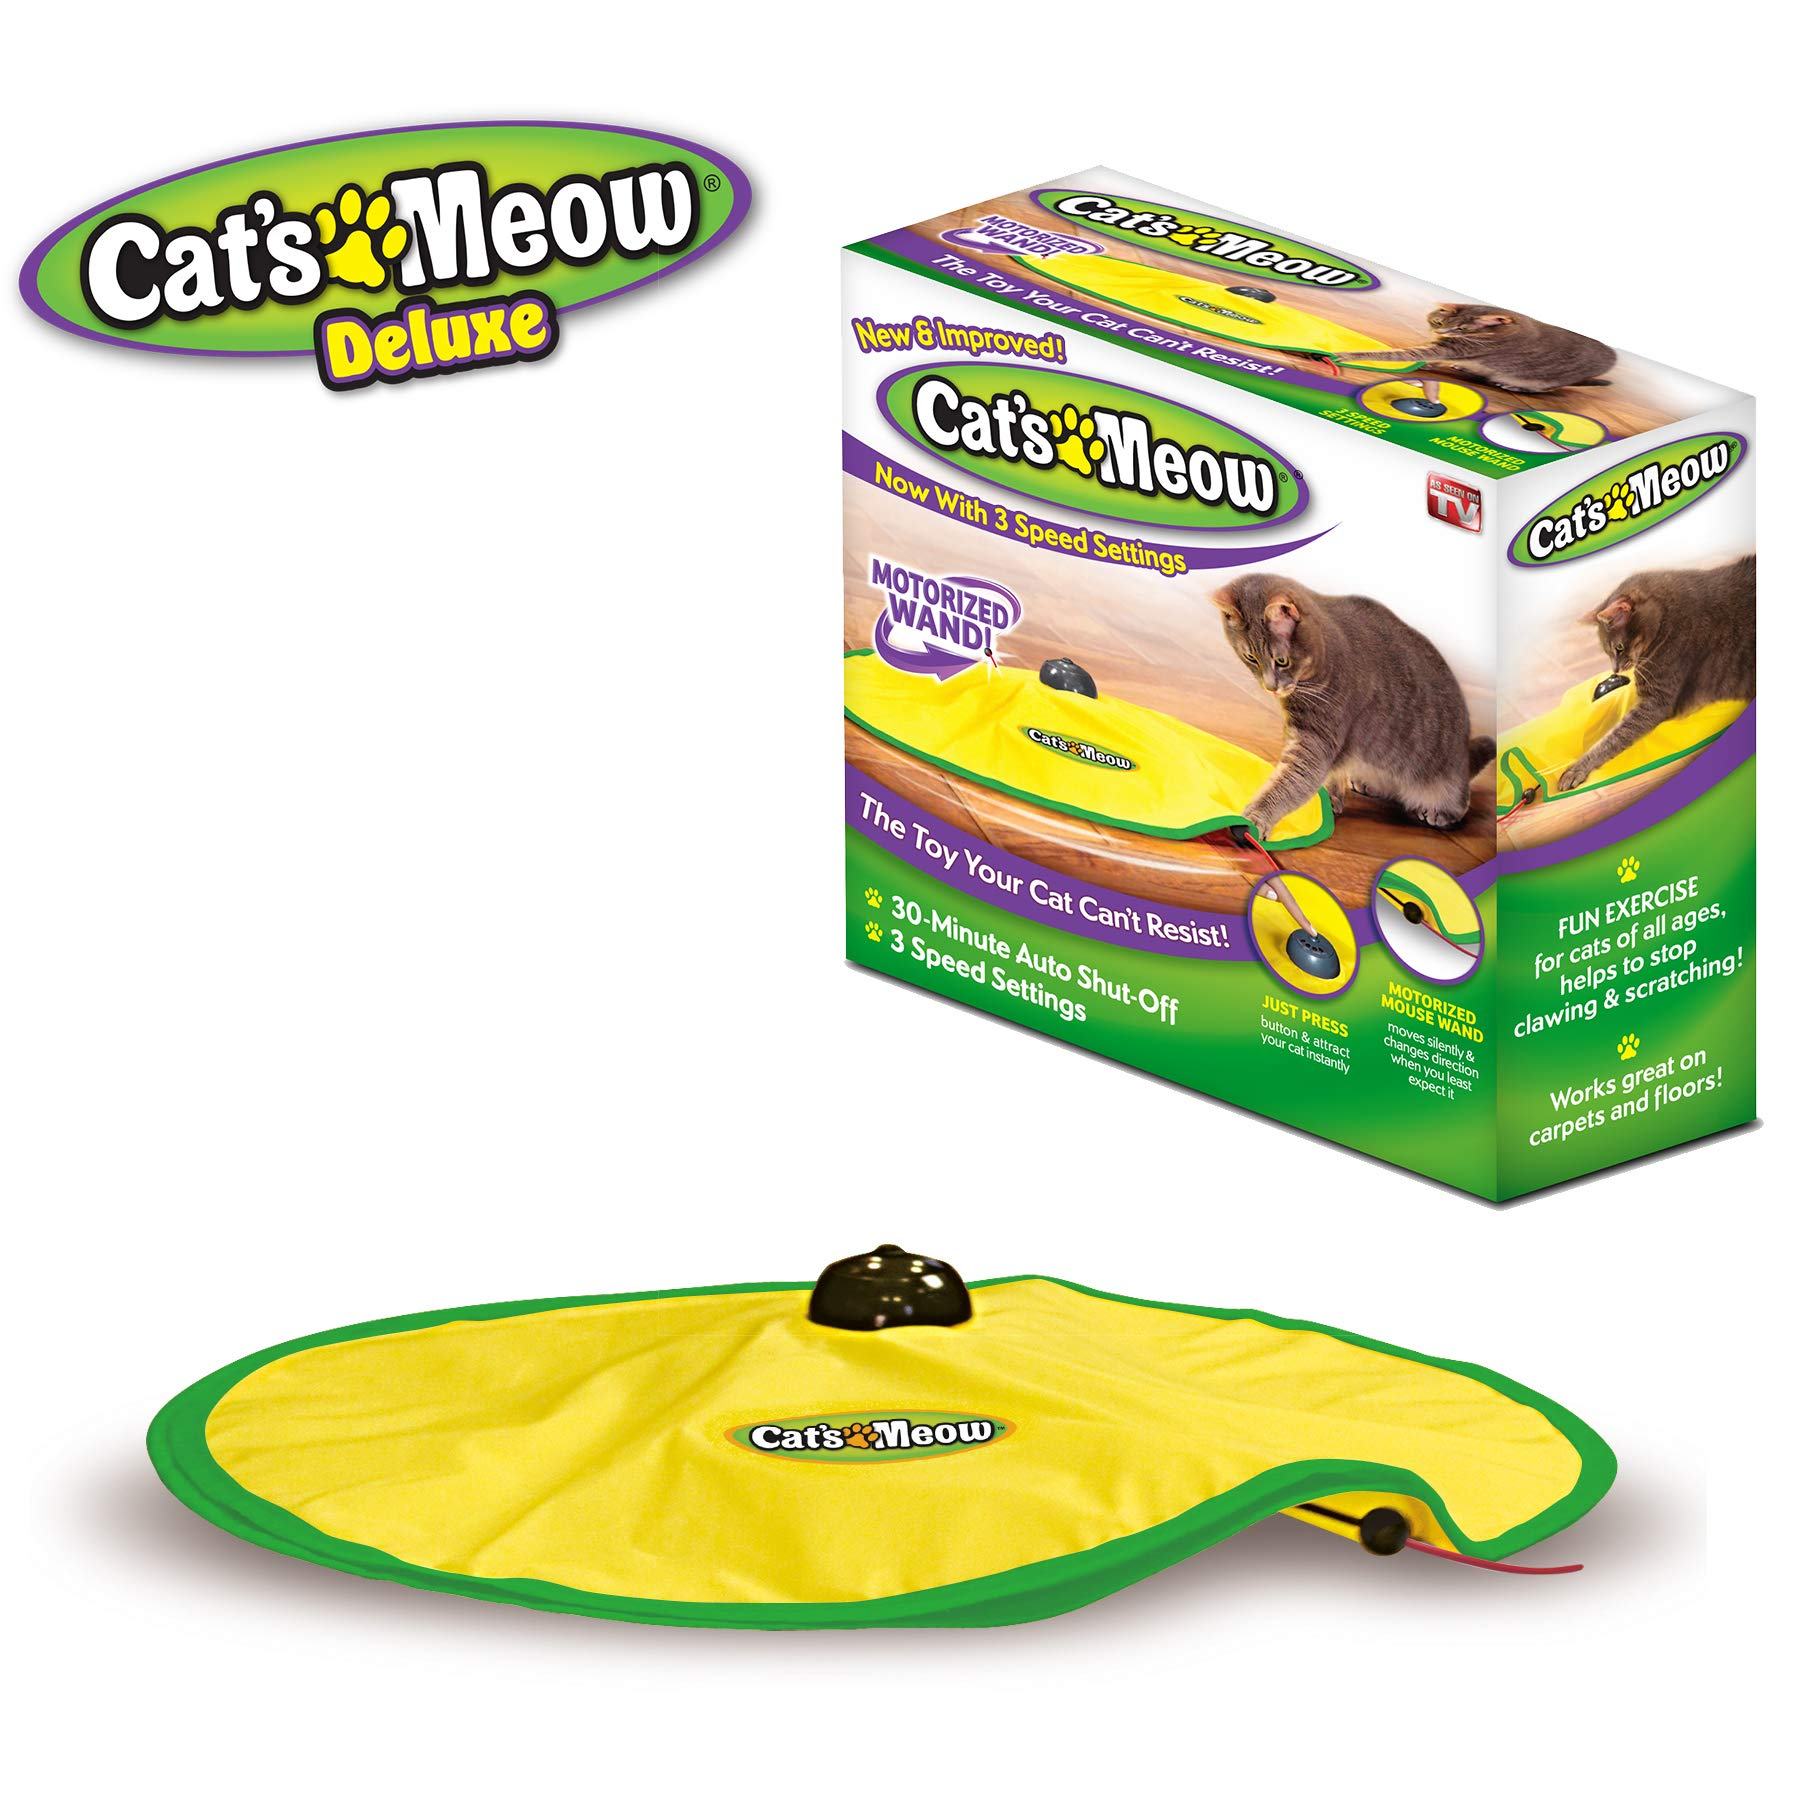 Cat's Meow- Motorized Wand Cat Toy, Automatic 30 Minute Shut Off, 3 Speed Settings, The Toy Your Cat Can't Resist by Cat's Meow